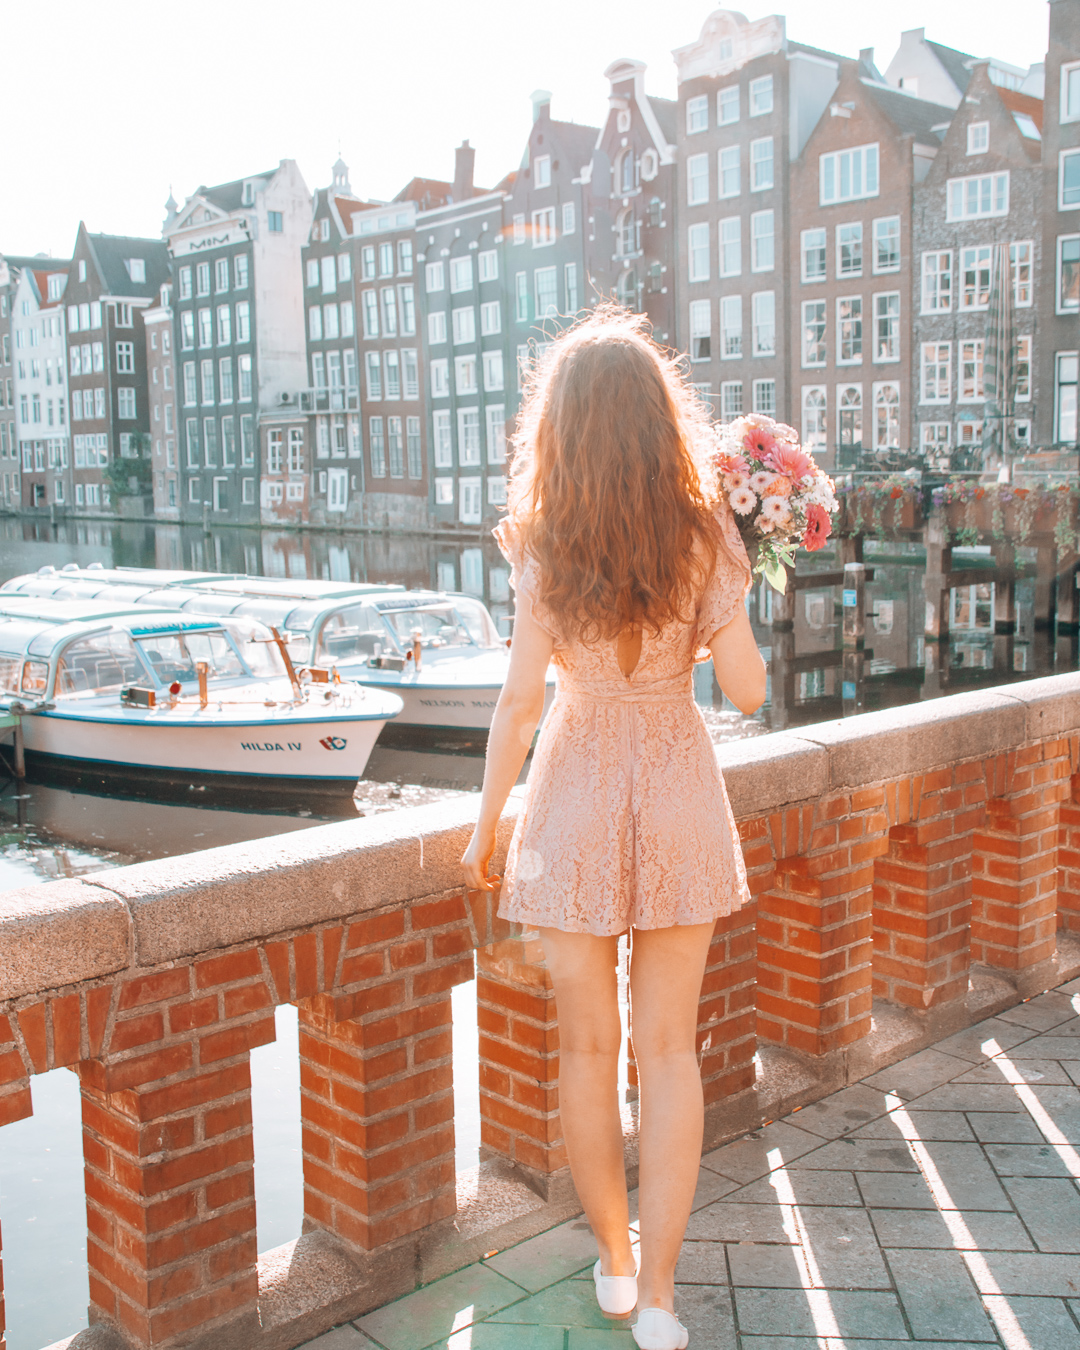 Canal cruises and houses in Amsterdam